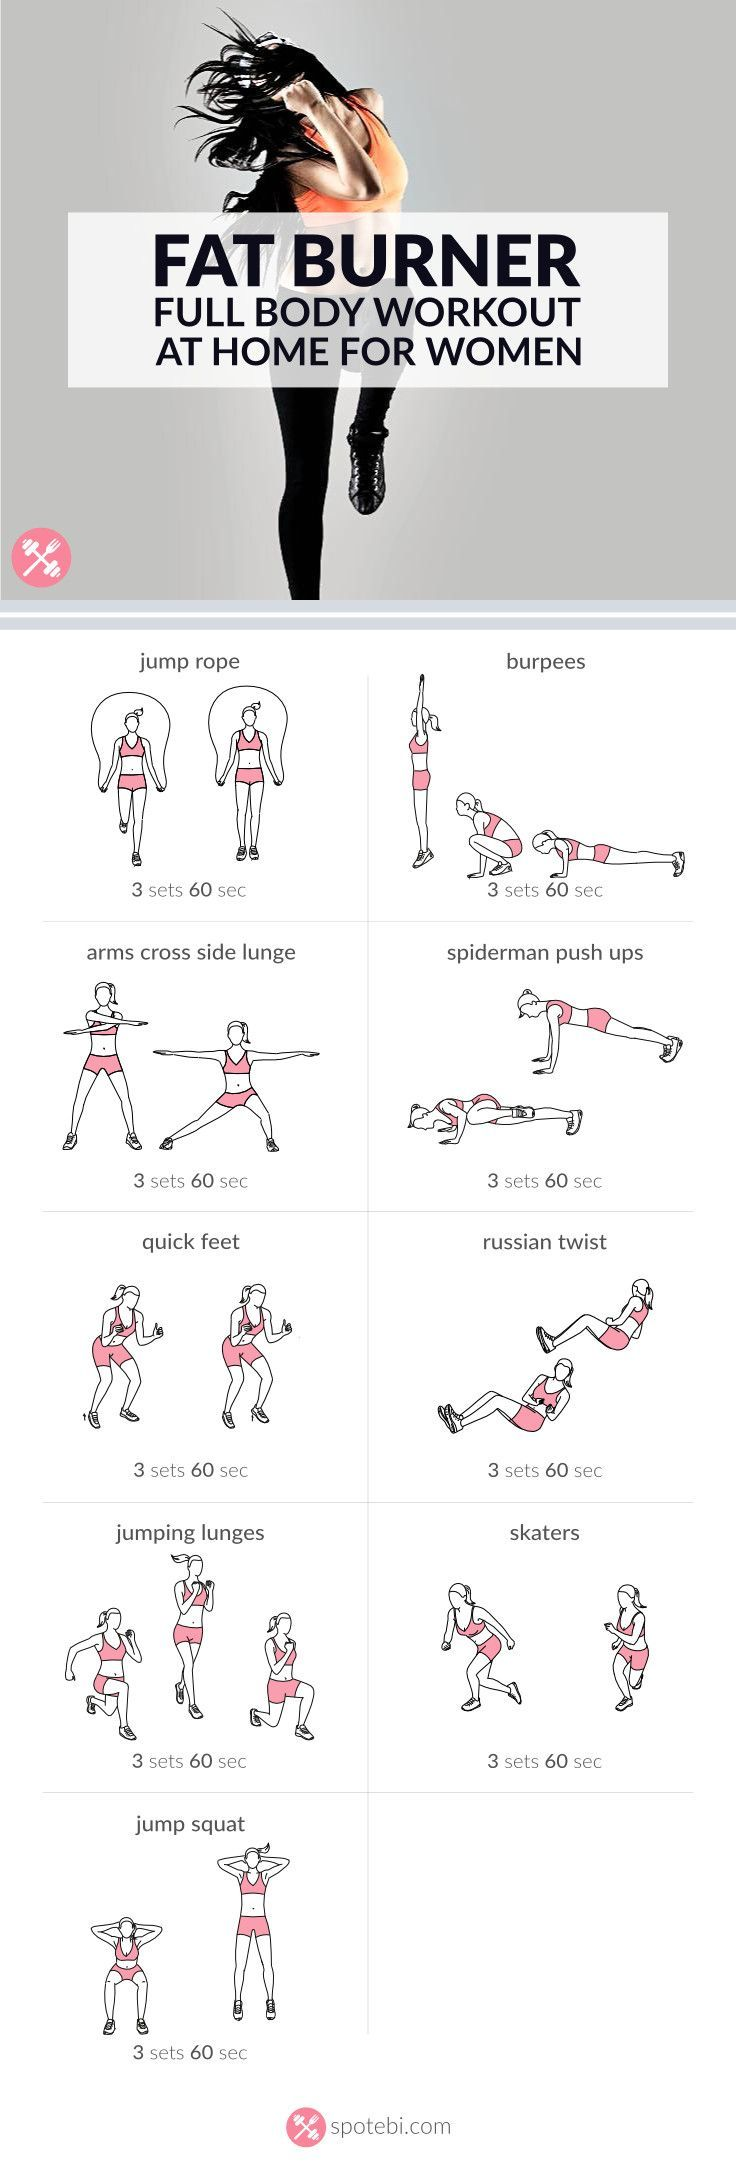 Burn body fat and increase your endurance with this bodyweight routine for women. A 30 minute full body workout to sculpt your body and boost your metabolism. www.spotebi.com/...